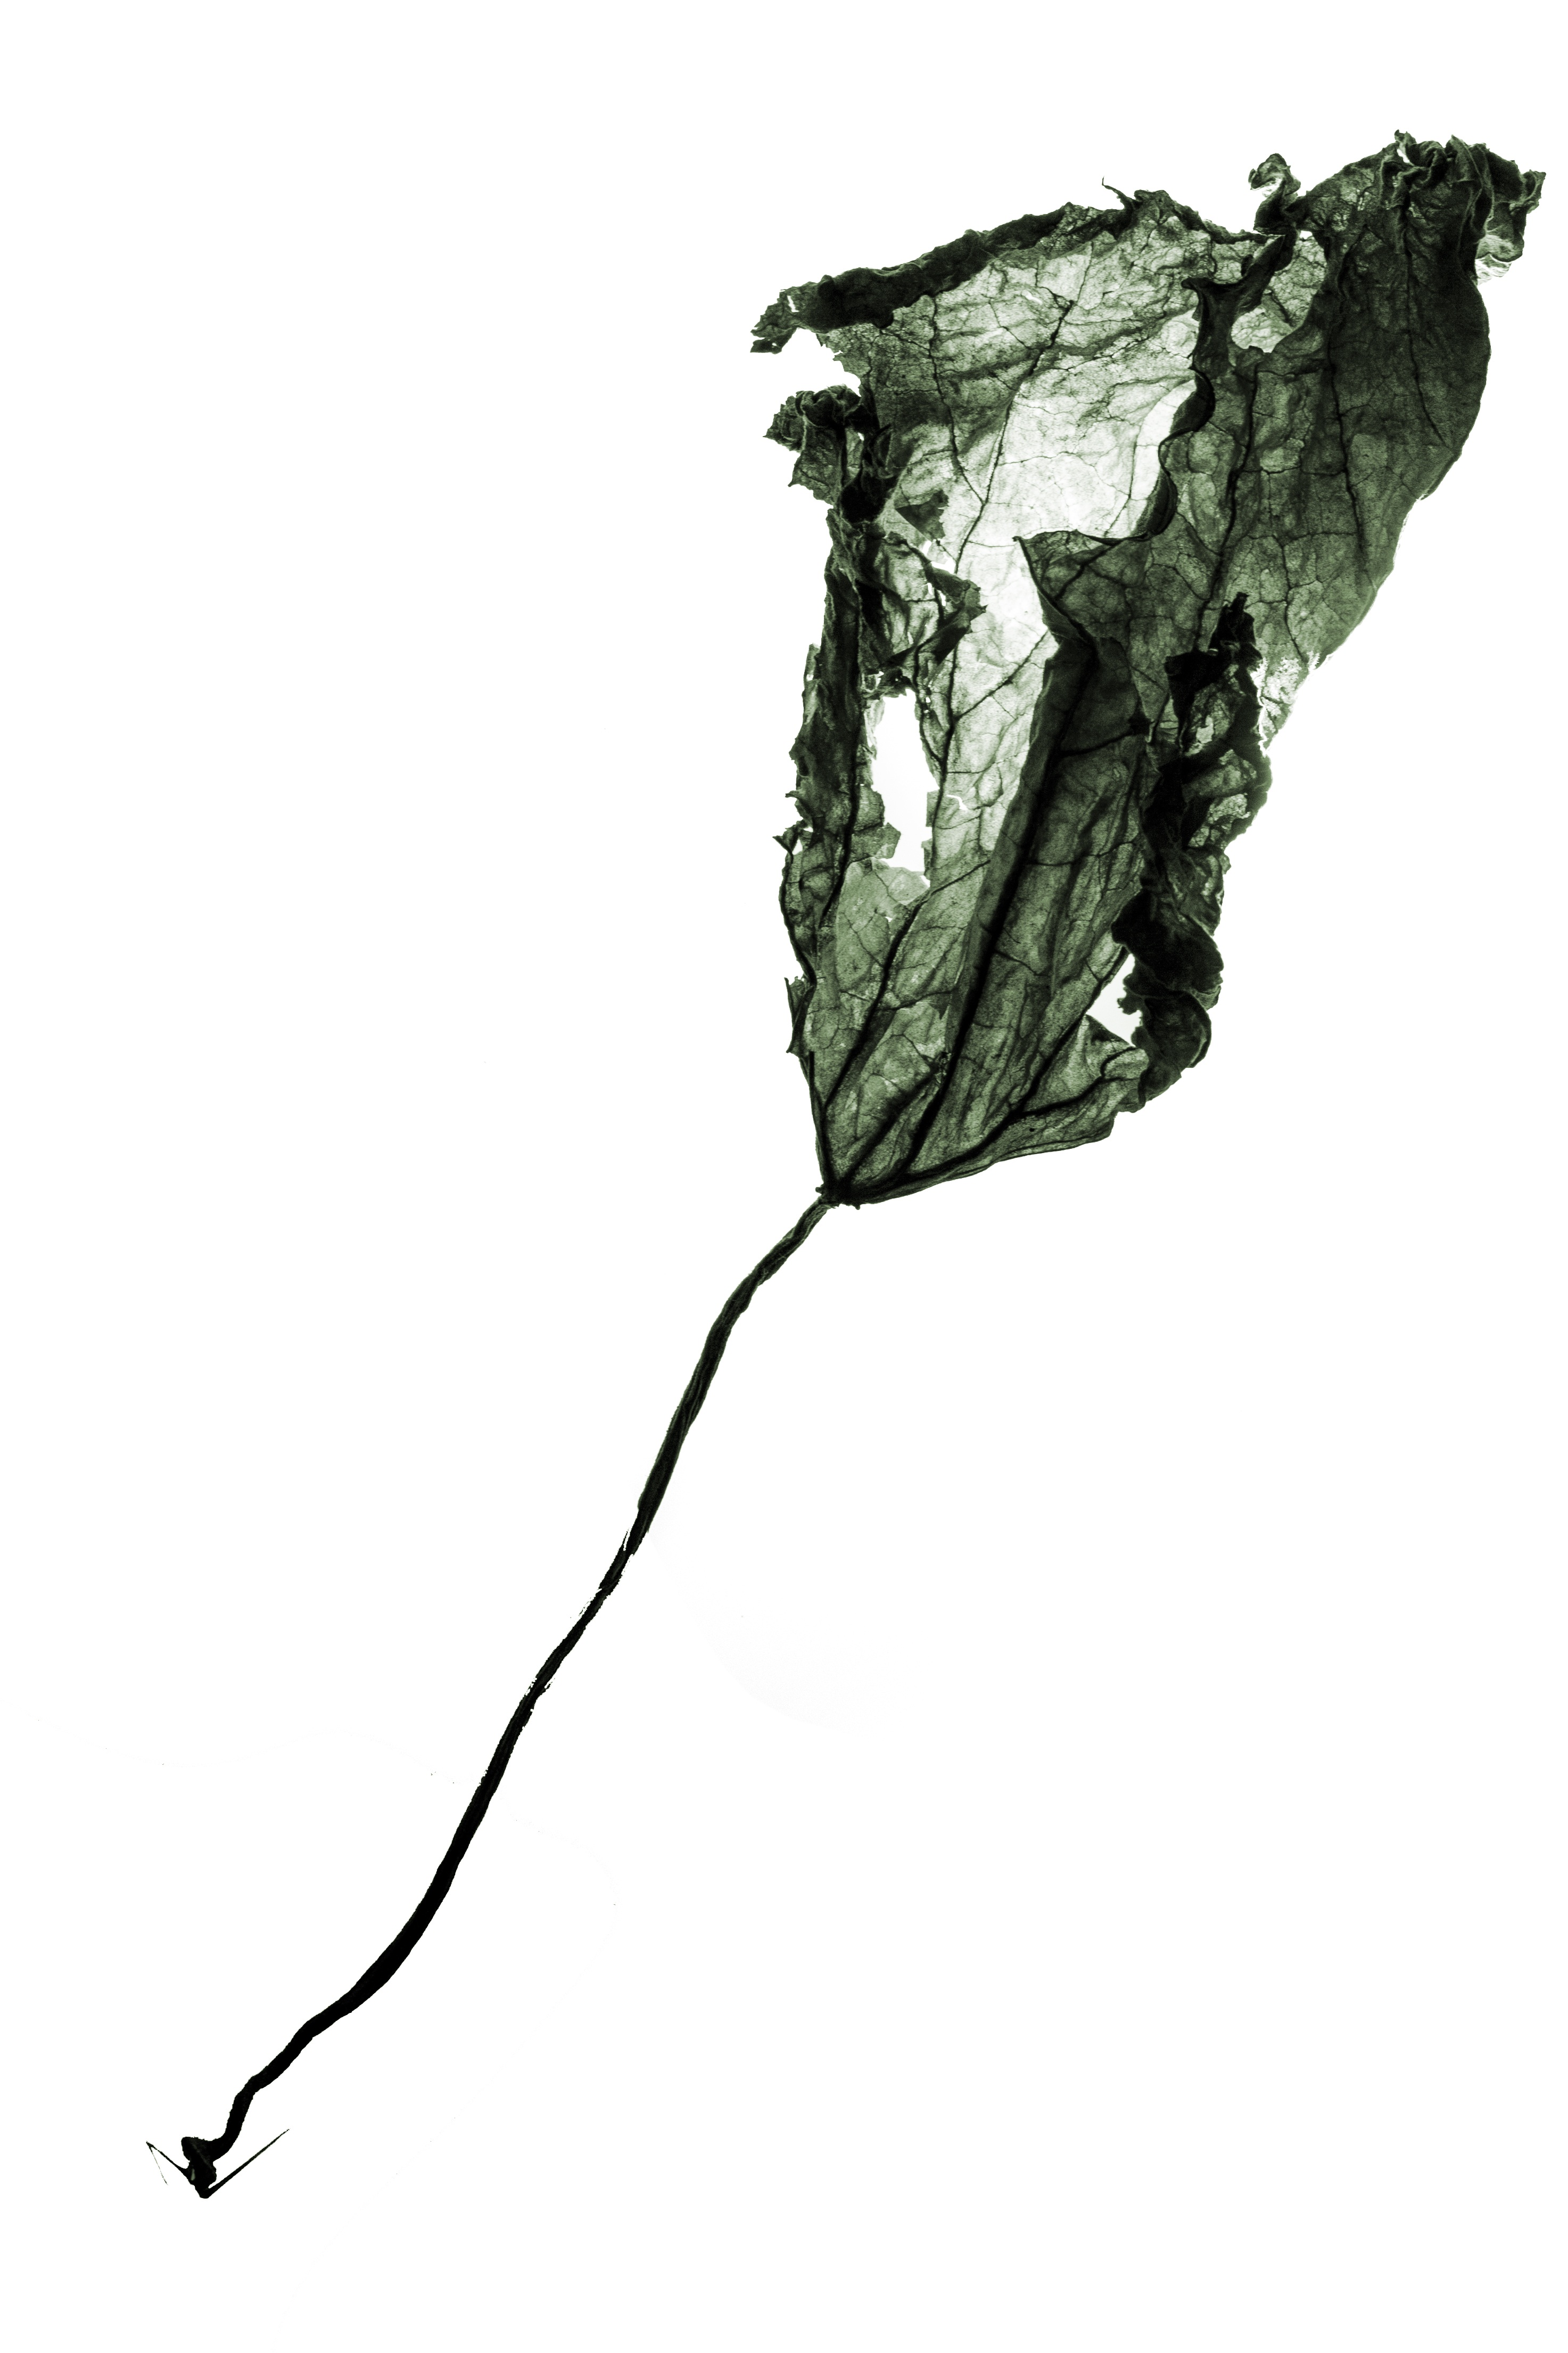 2946x4420 Free Images Branch, Silhouette, Plant, Leaf, Flower, Still Life